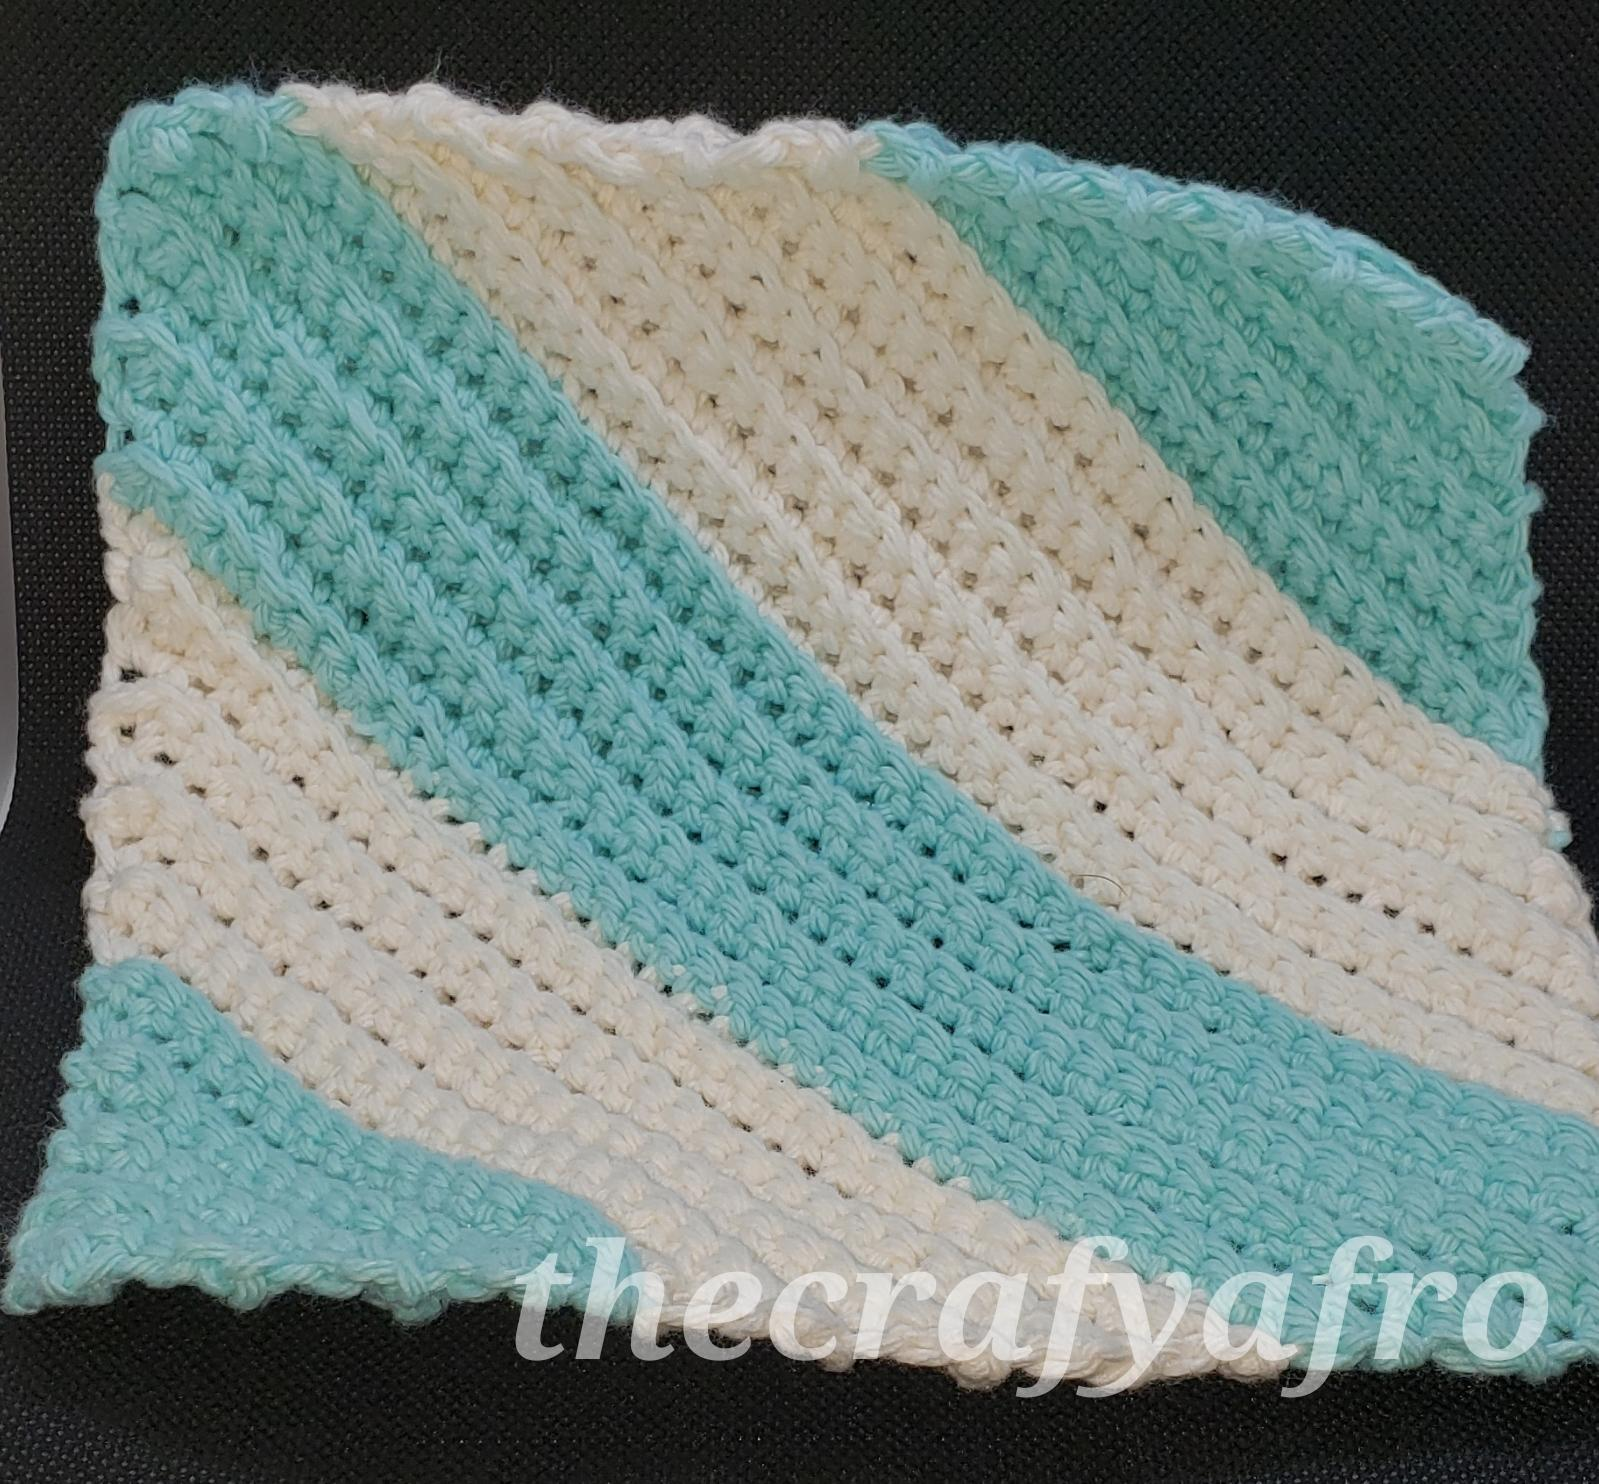 Blue and white striped crochet dishcloth.